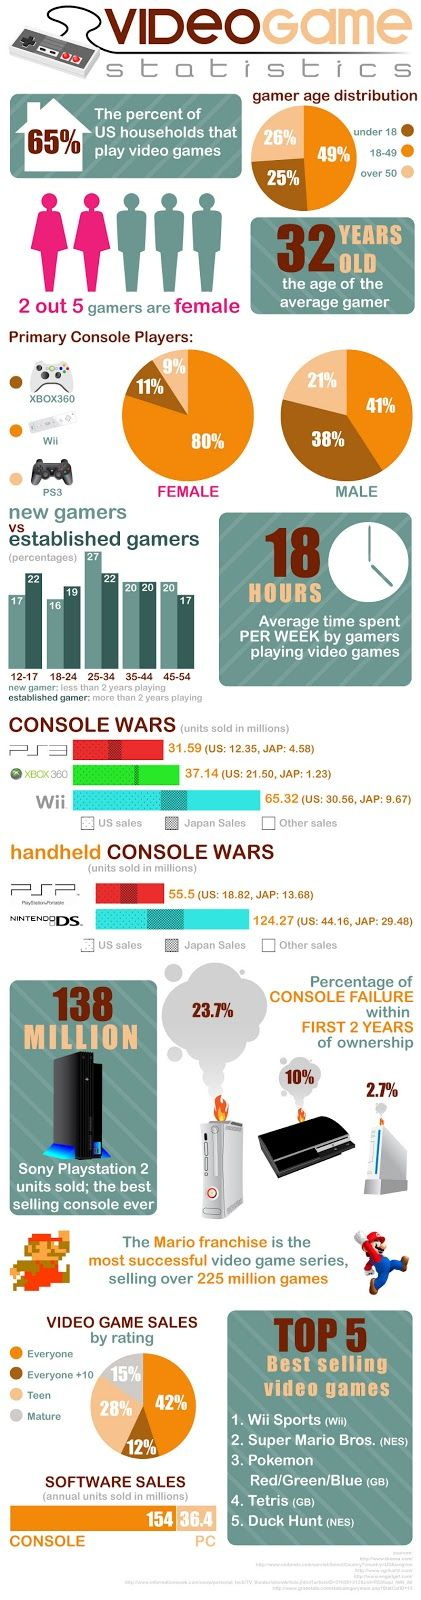 Video Game Industry Statistics #Videogames #gaming